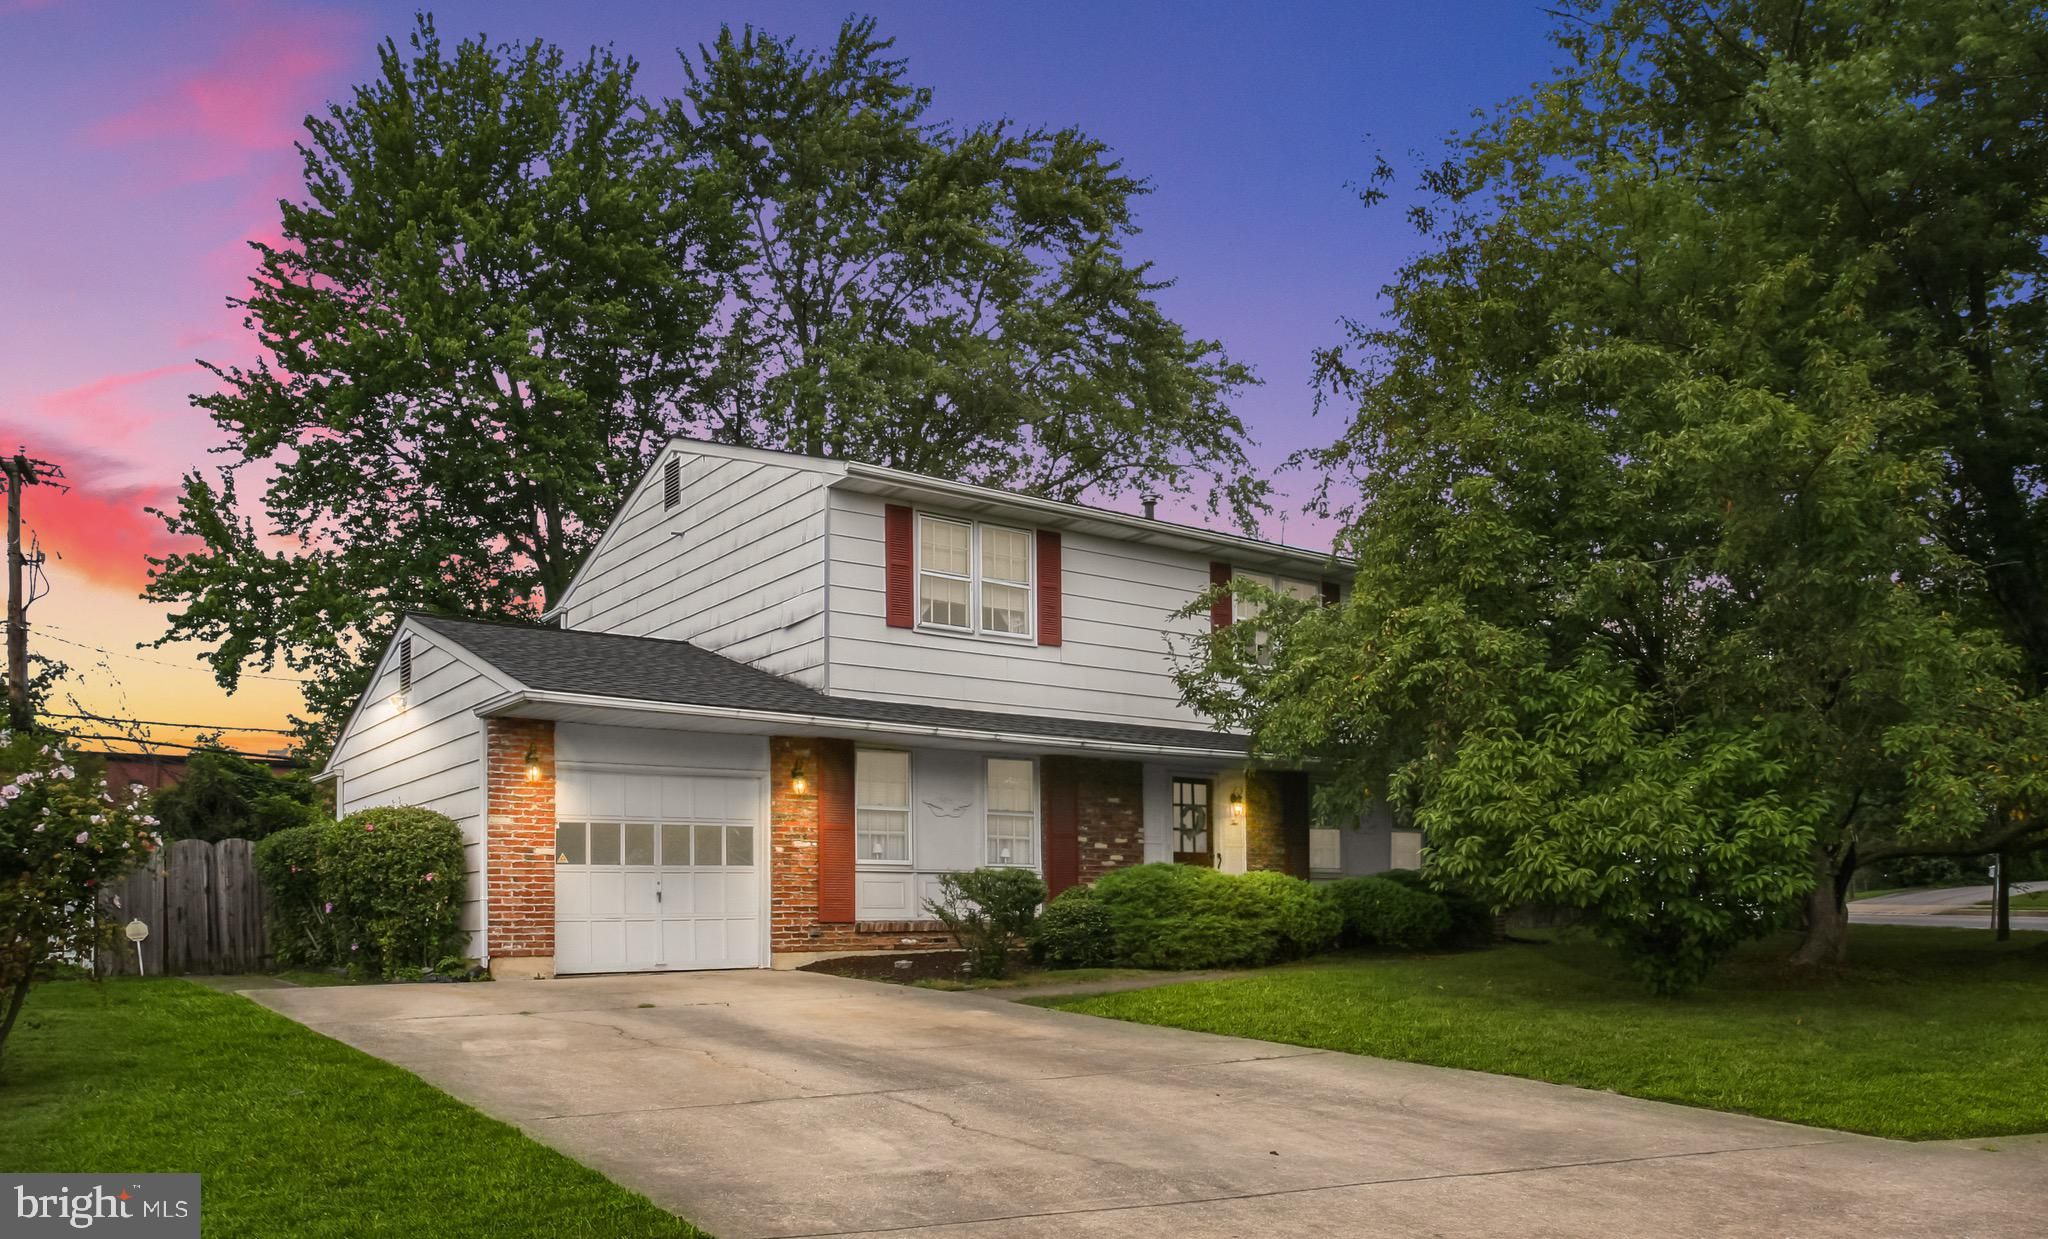 AS-IS home could be a great investment!  Sweat equity opportunity in the Red Mill Farms neighborhood